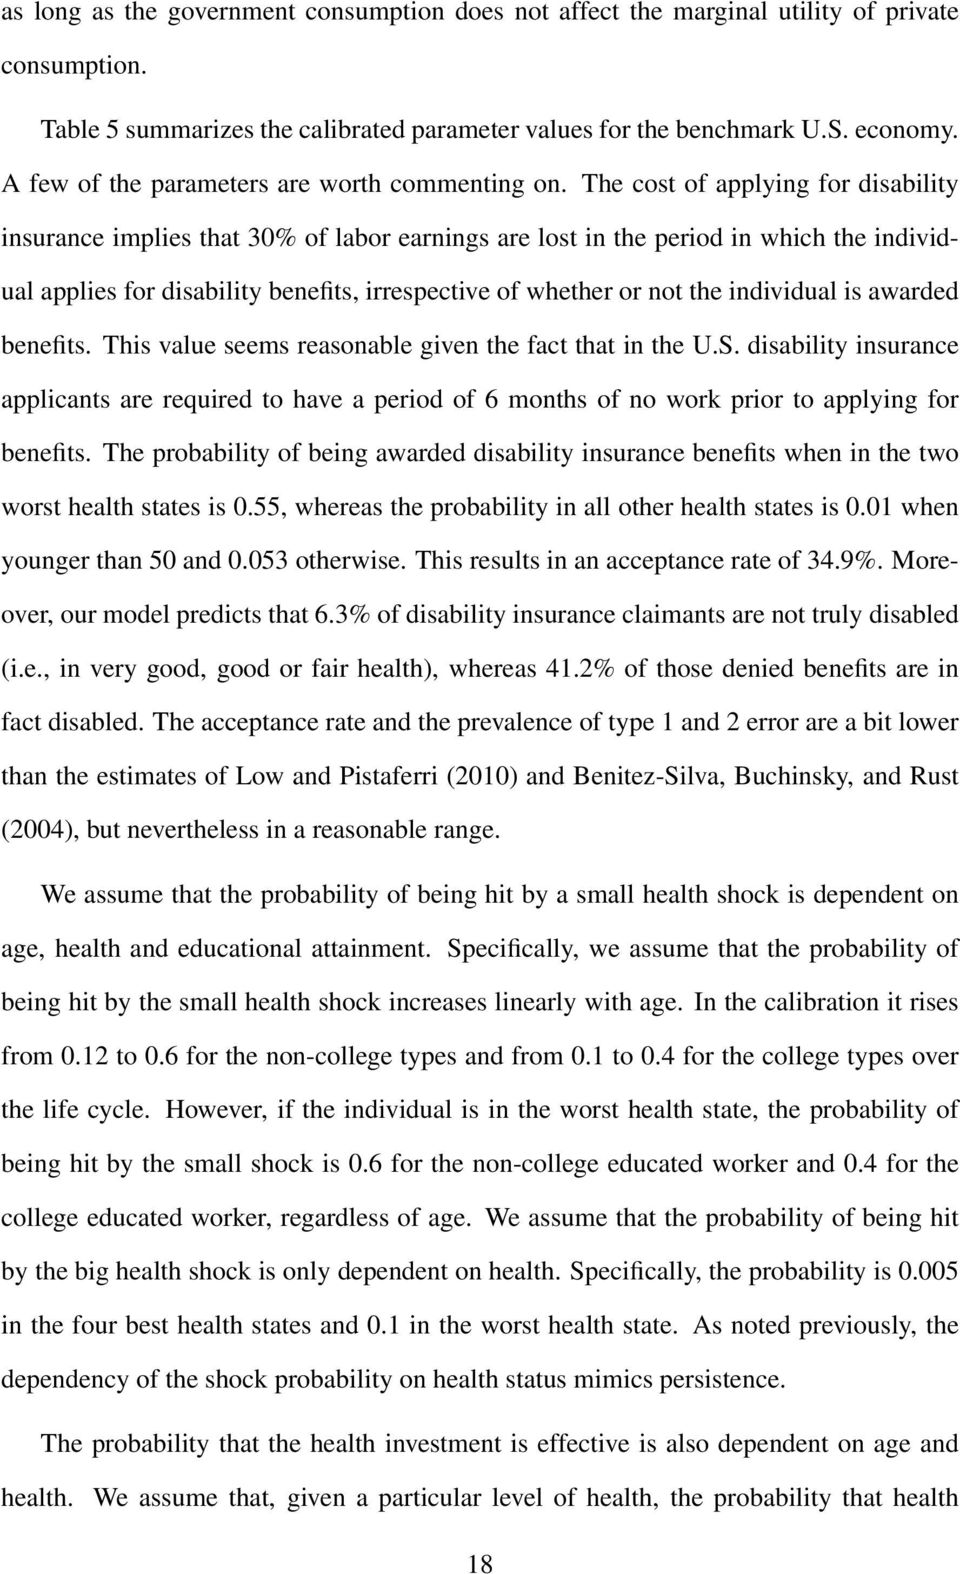 The cost of applying for disability insurance implies that 30% of labor earnings are lost in the period in which the individual applies for disability benefits, irrespective of whether or not the